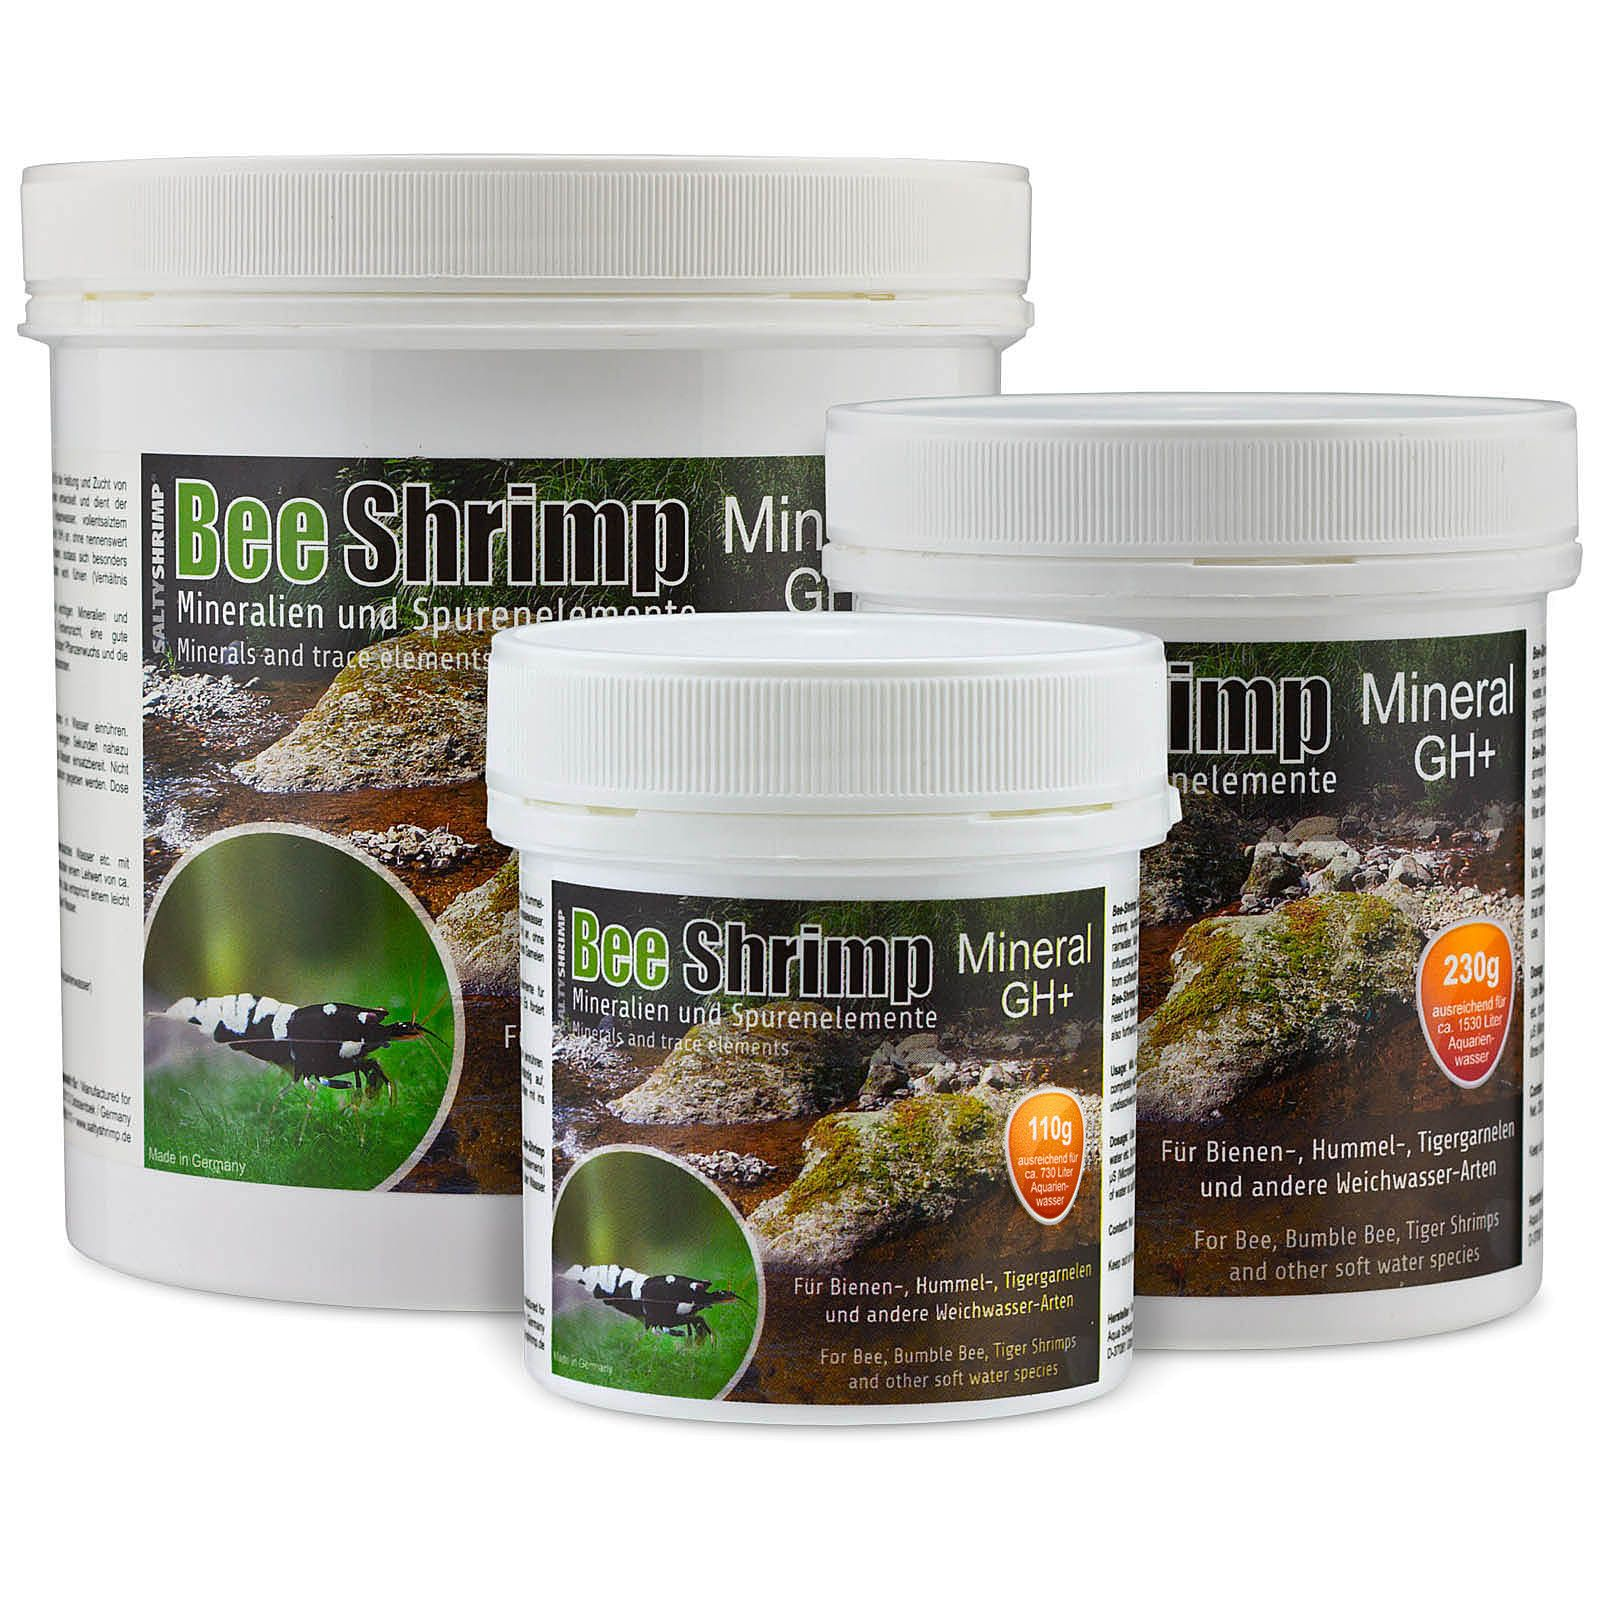 SaltyShrimp - Bee Shrimp Mineral GH+ - 110 g